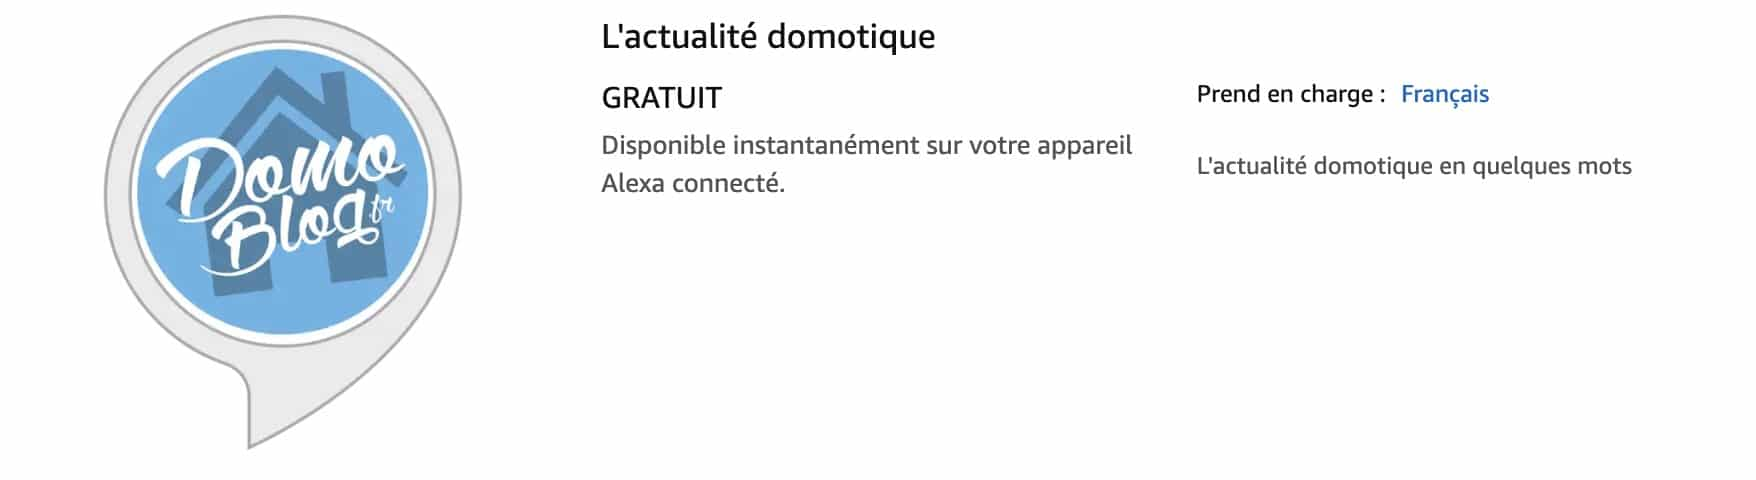 domo-blog-skill-amazon-actualite-domotique